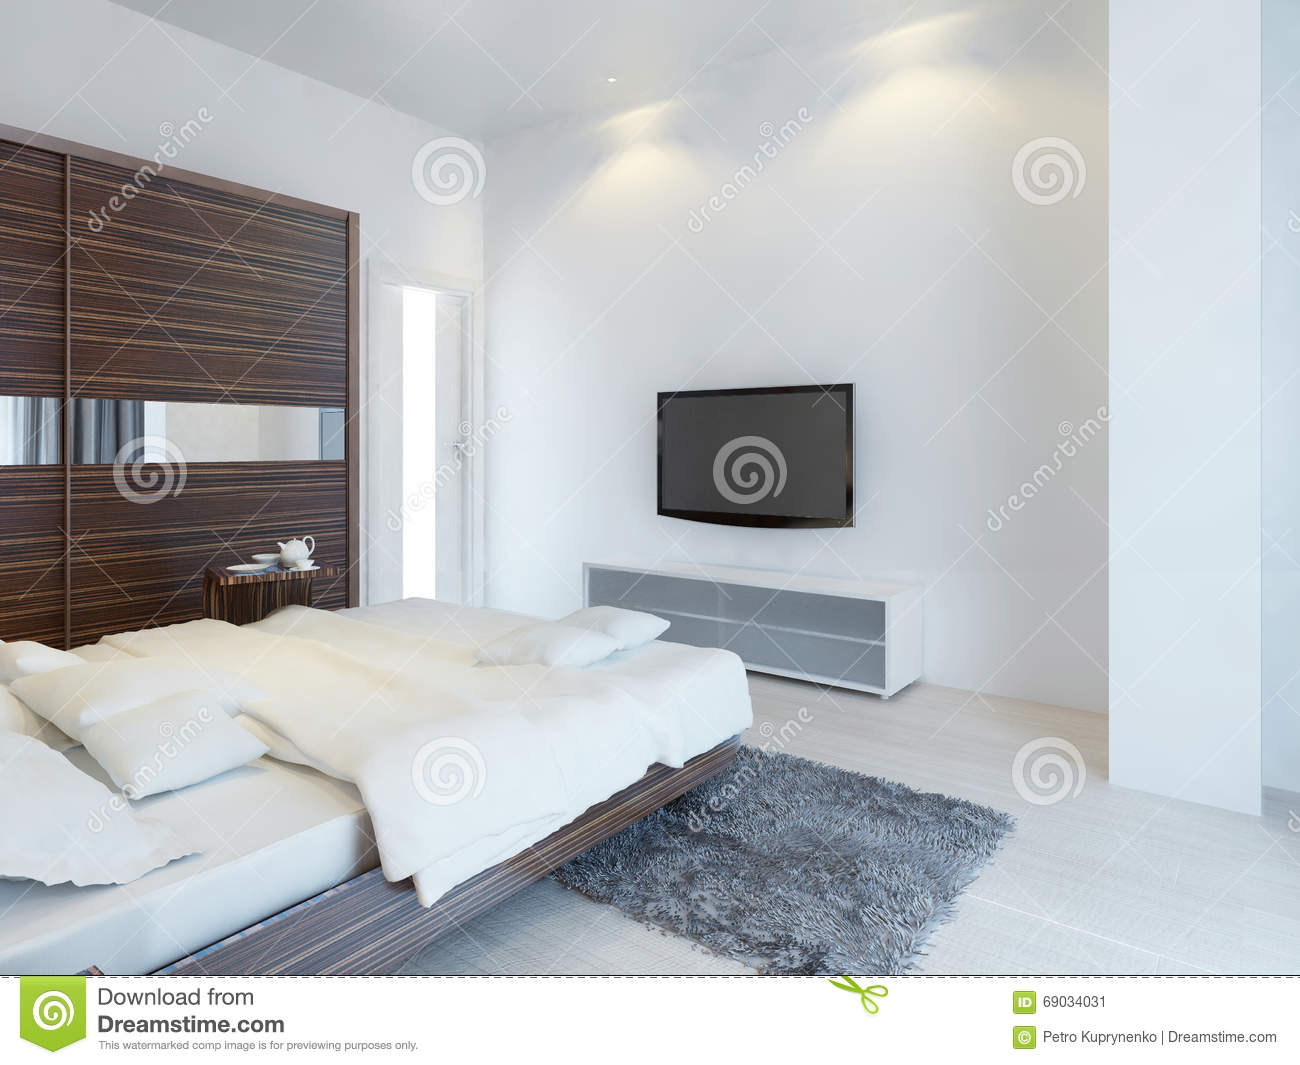 Chambre coucher avec la tv et une console de media illustration stock illustration du - Tv in camera da letto ...